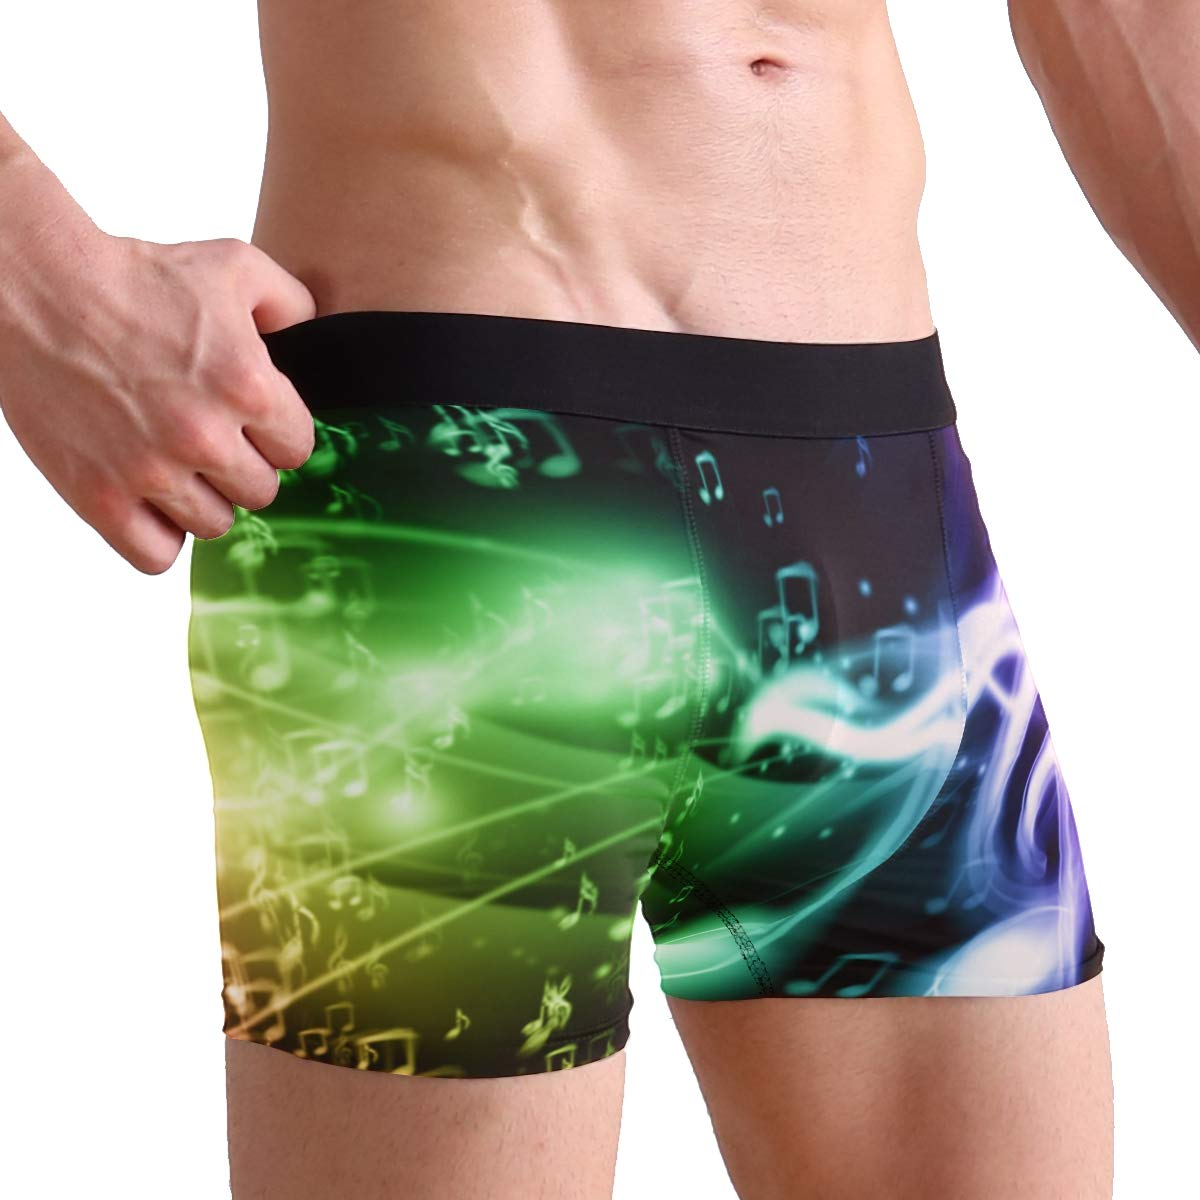 Boxer Briefs Mens Underwear Colorful Music Notes Trunks for Men